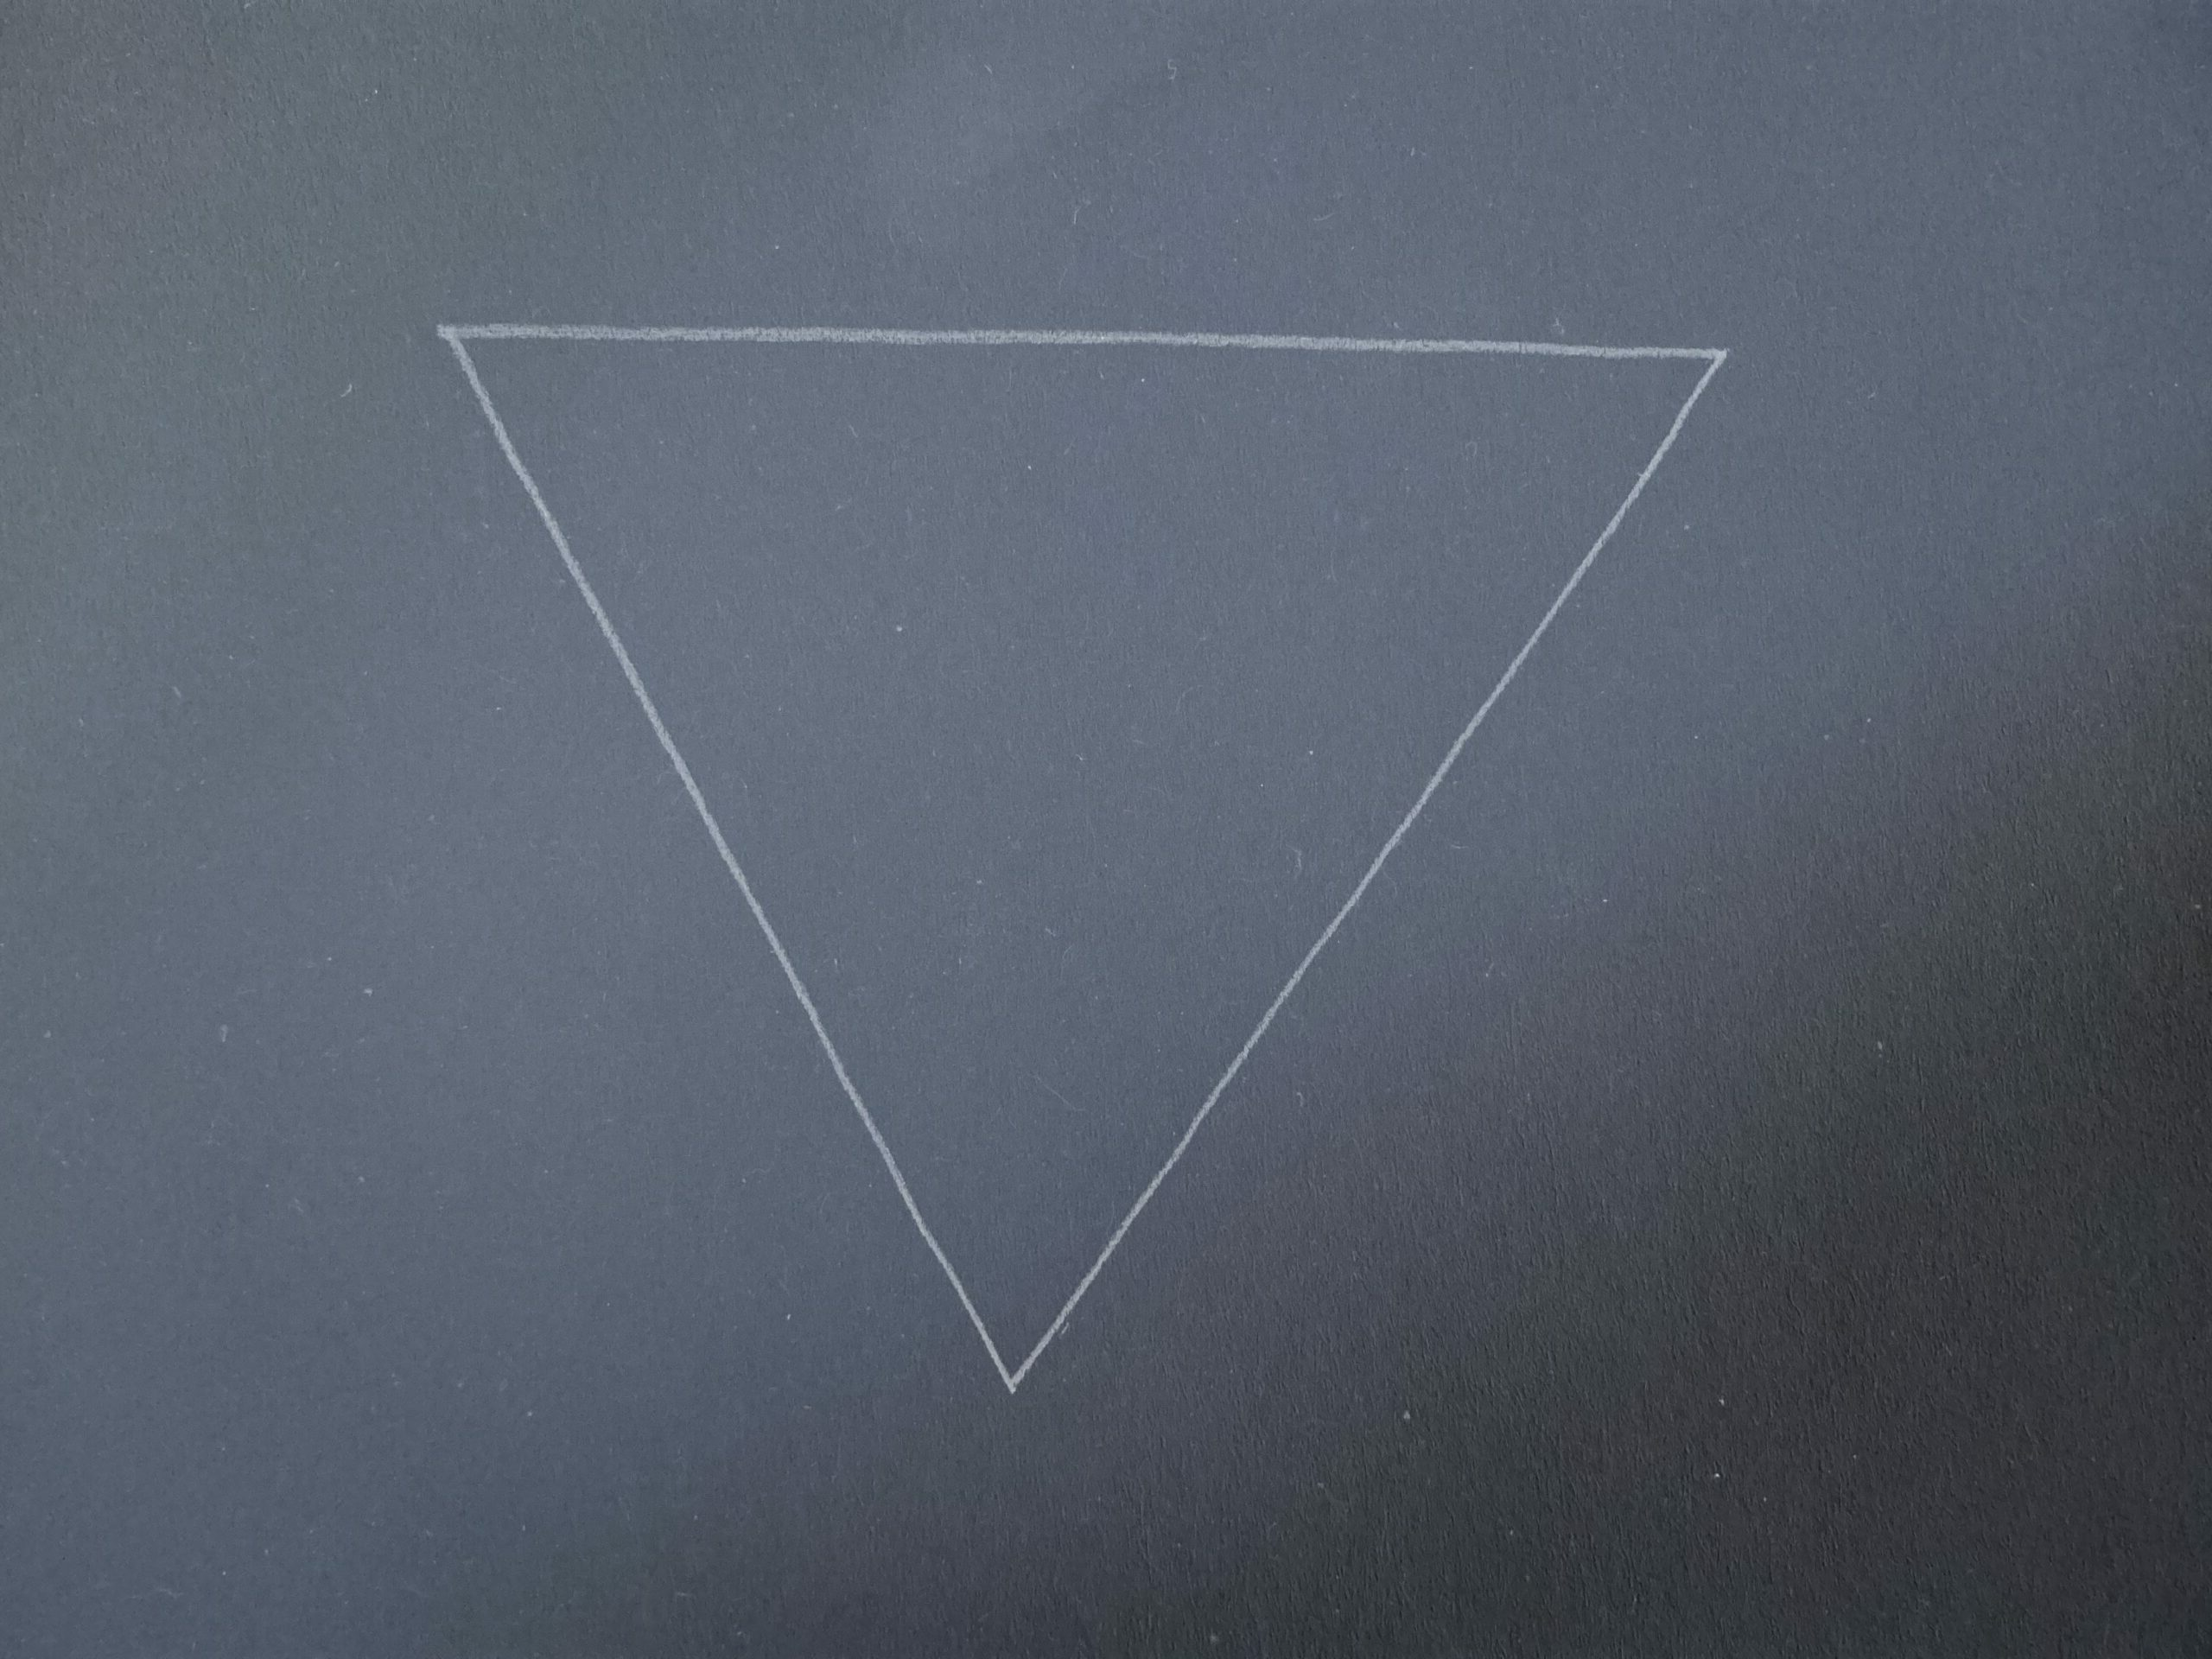 a white line drawing of a upside down triangle against navy background